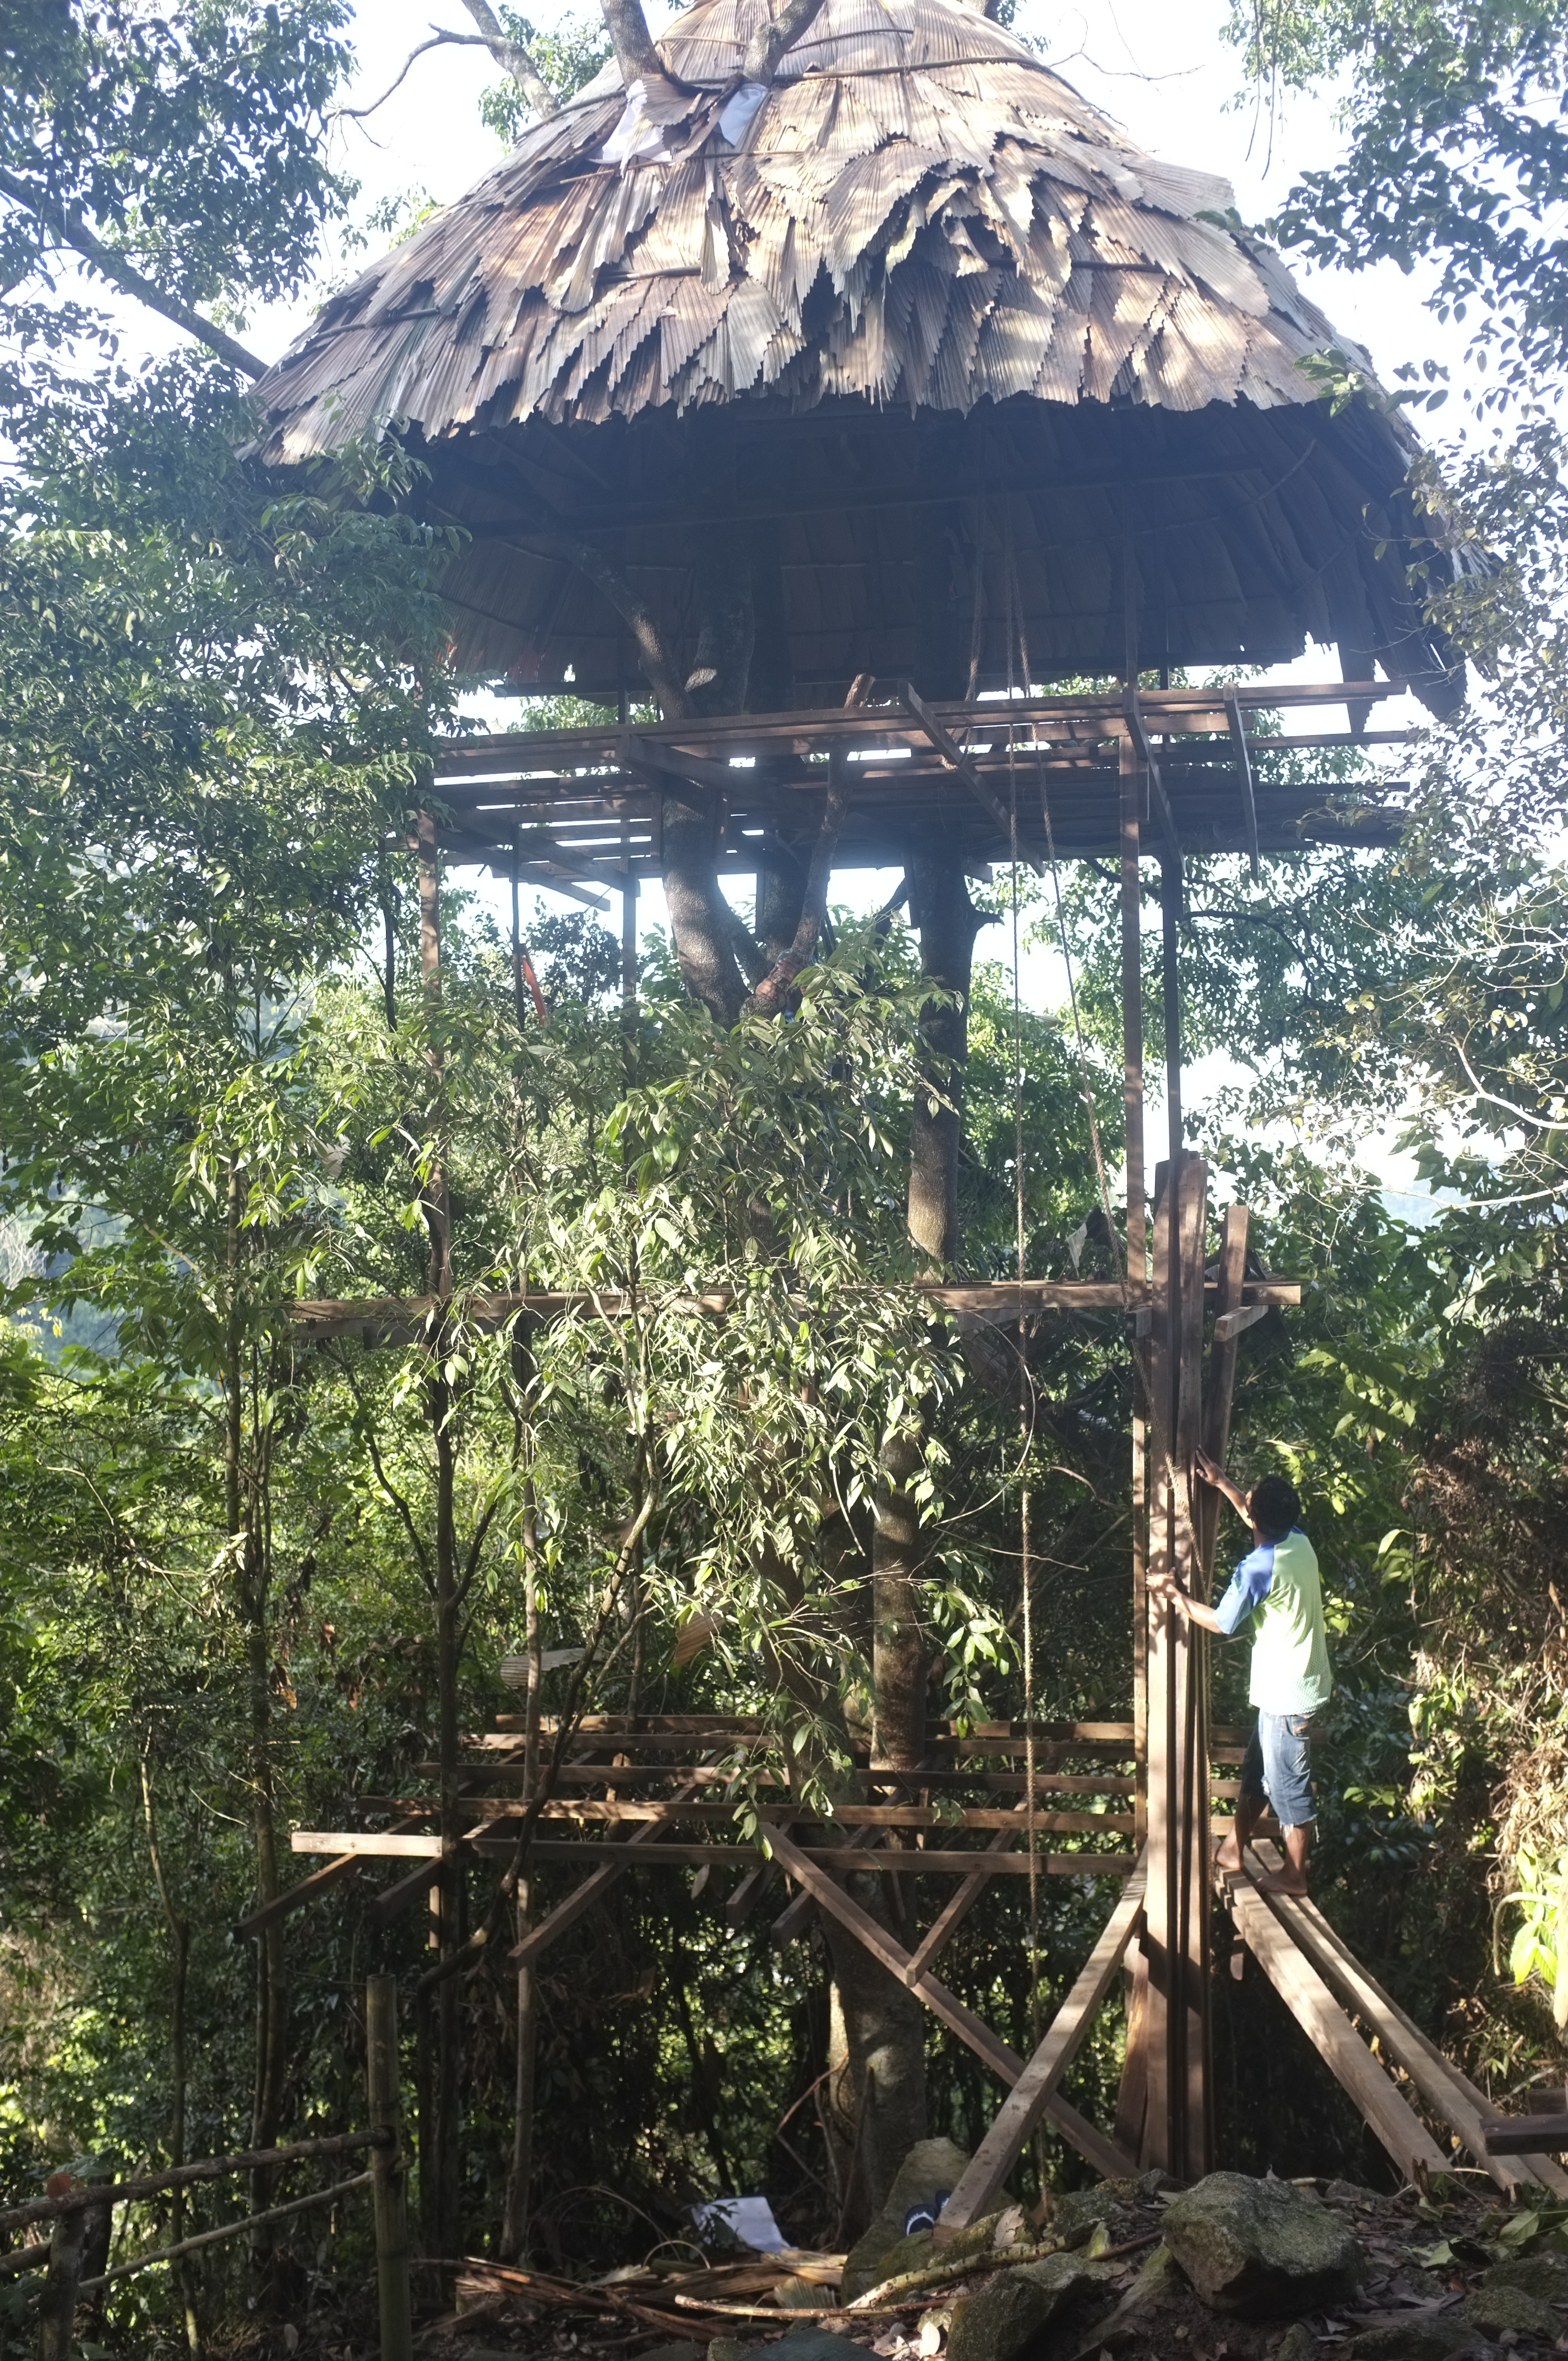 Building A Treehouse In The Rainforest Into The Ulu